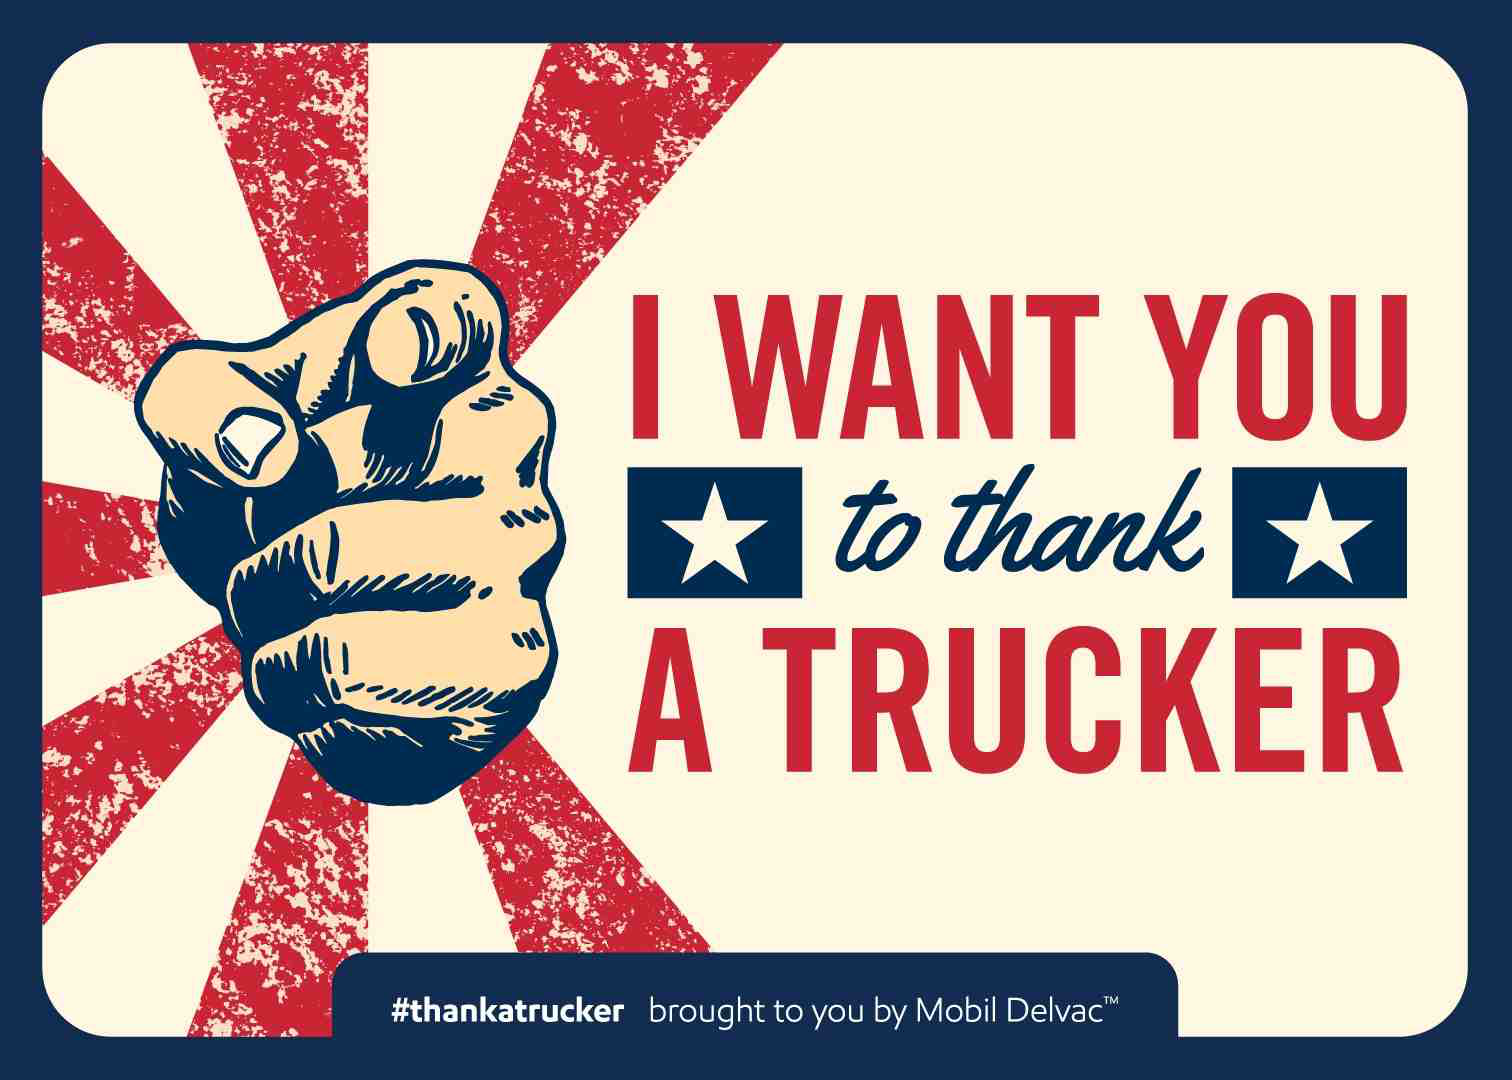 Trucker appreciation week happening now: Roundup of videos, promotions and other appreciation efforts